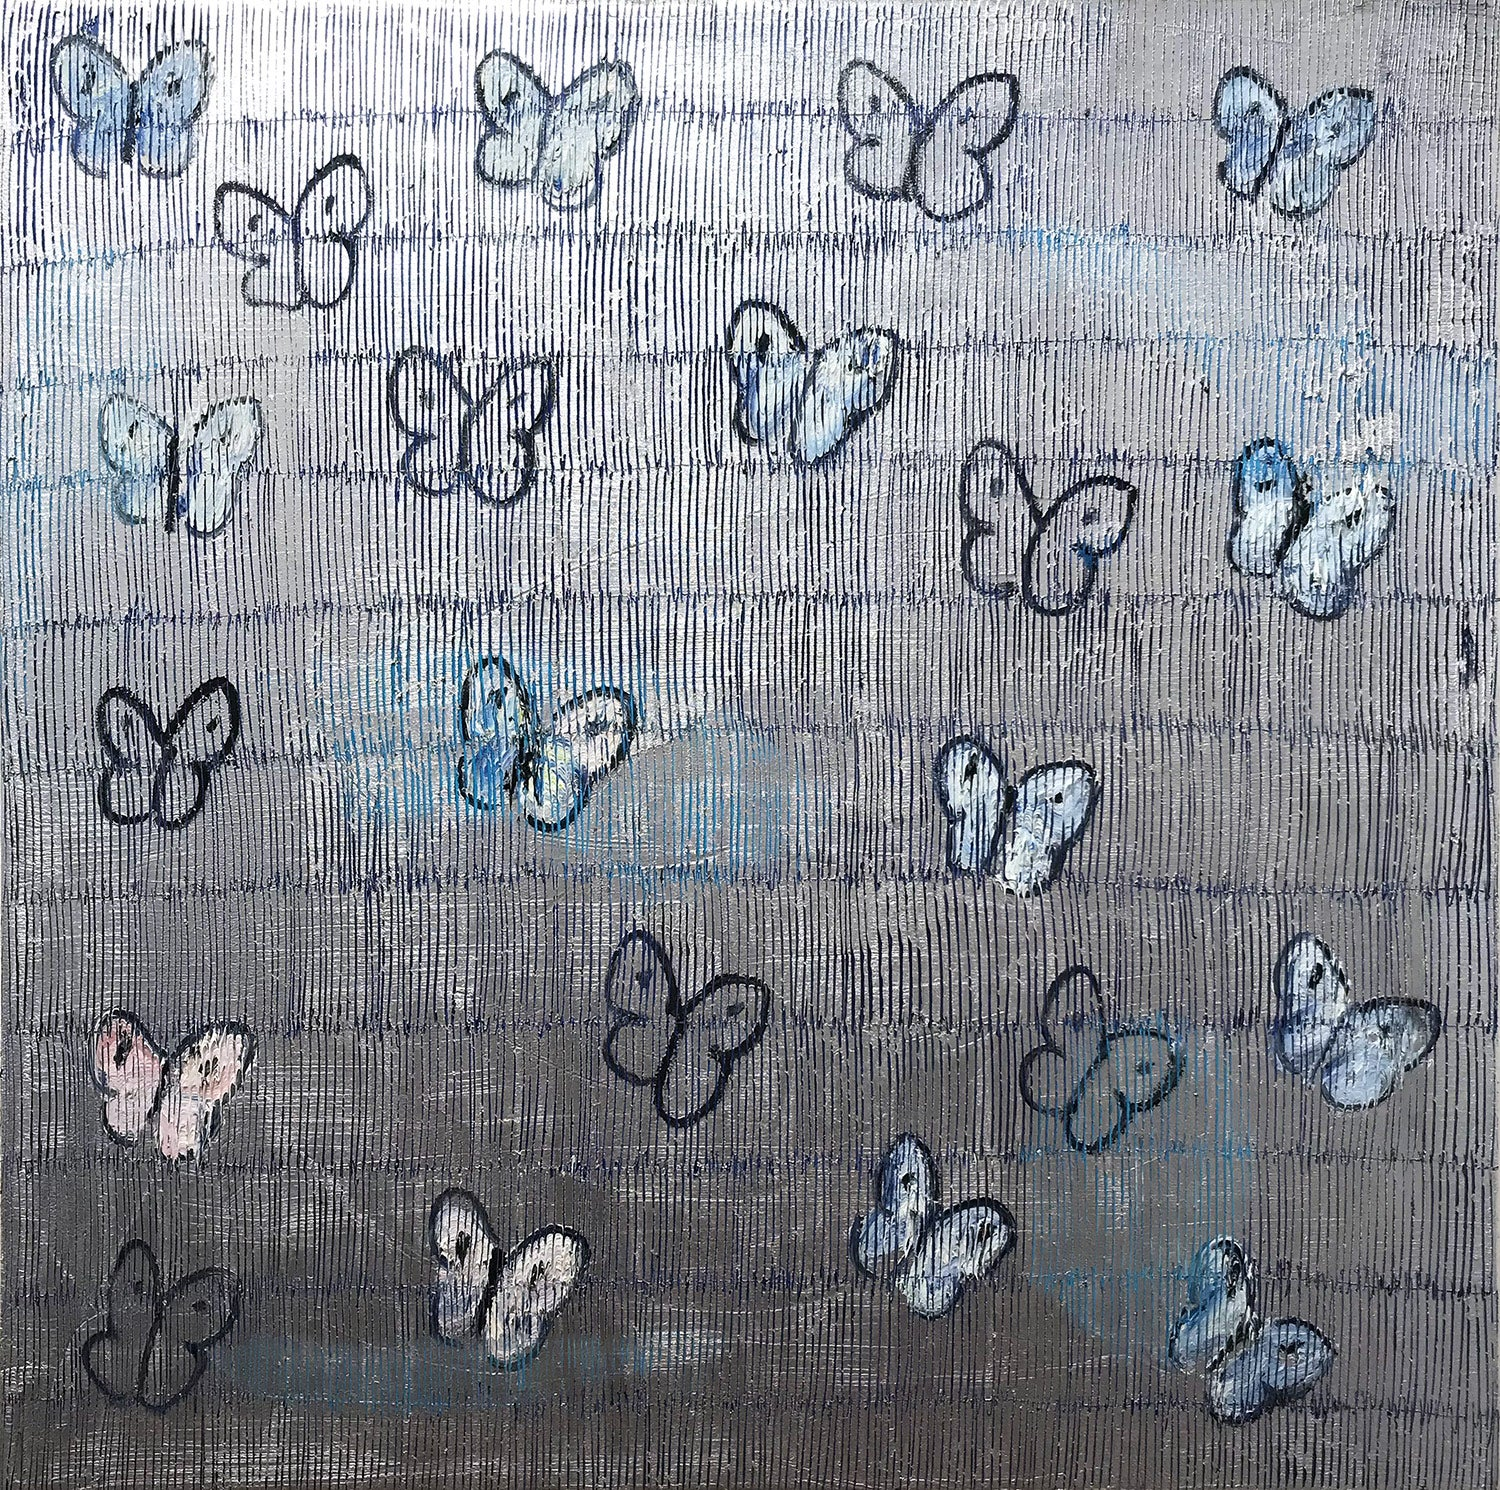 """""""Silverado"""" White and Blue Butterflies with Silver Background Painting on Canvas"""